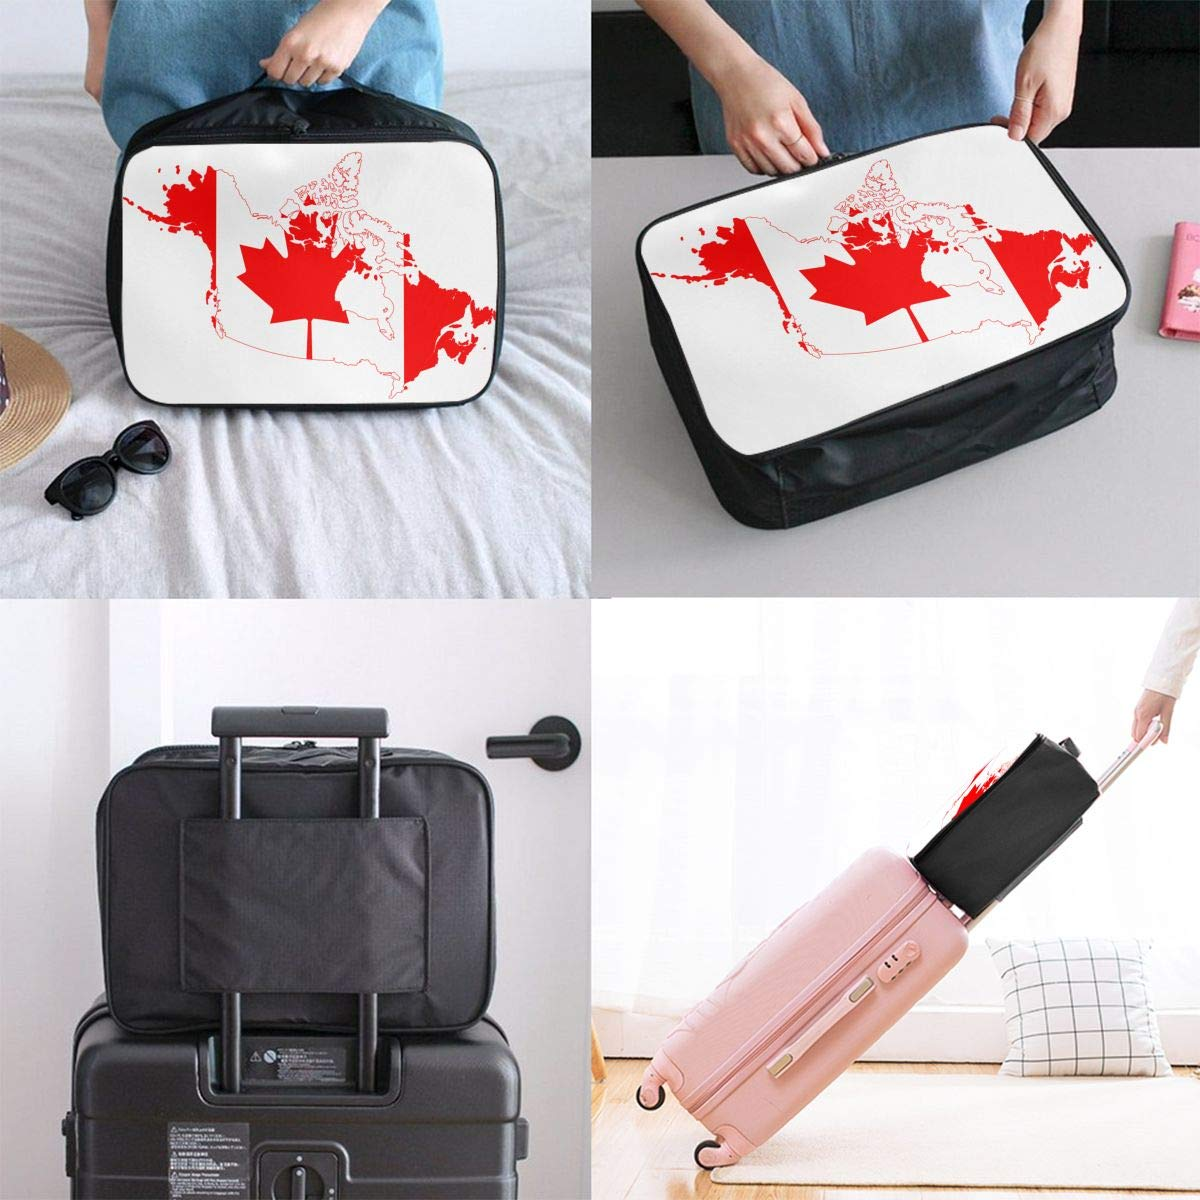 YueLJB Canada Country Outline Lightweight Large Capacity Portable Luggage Bag Travel Duffel Bag Storage Carry Luggage Duffle Tote Bag